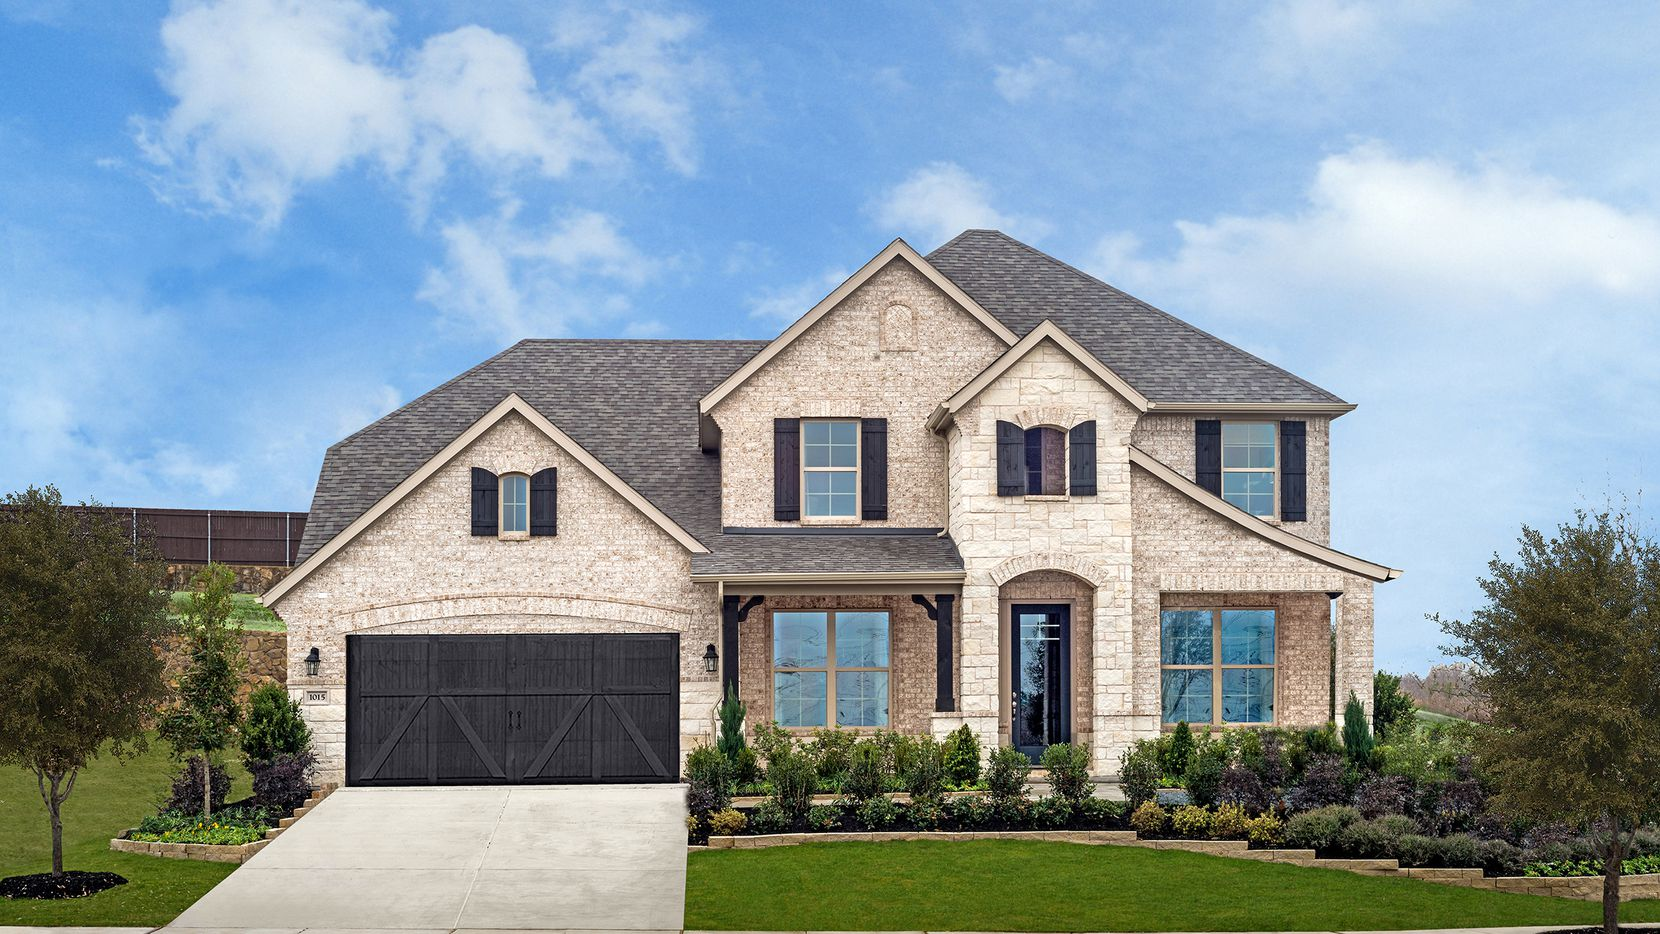 Beazer Homes offers residences priced from the low $200s to the $500s in communities throughout the area, including two 55-plus condo communities in Farmers Branch and Allen.